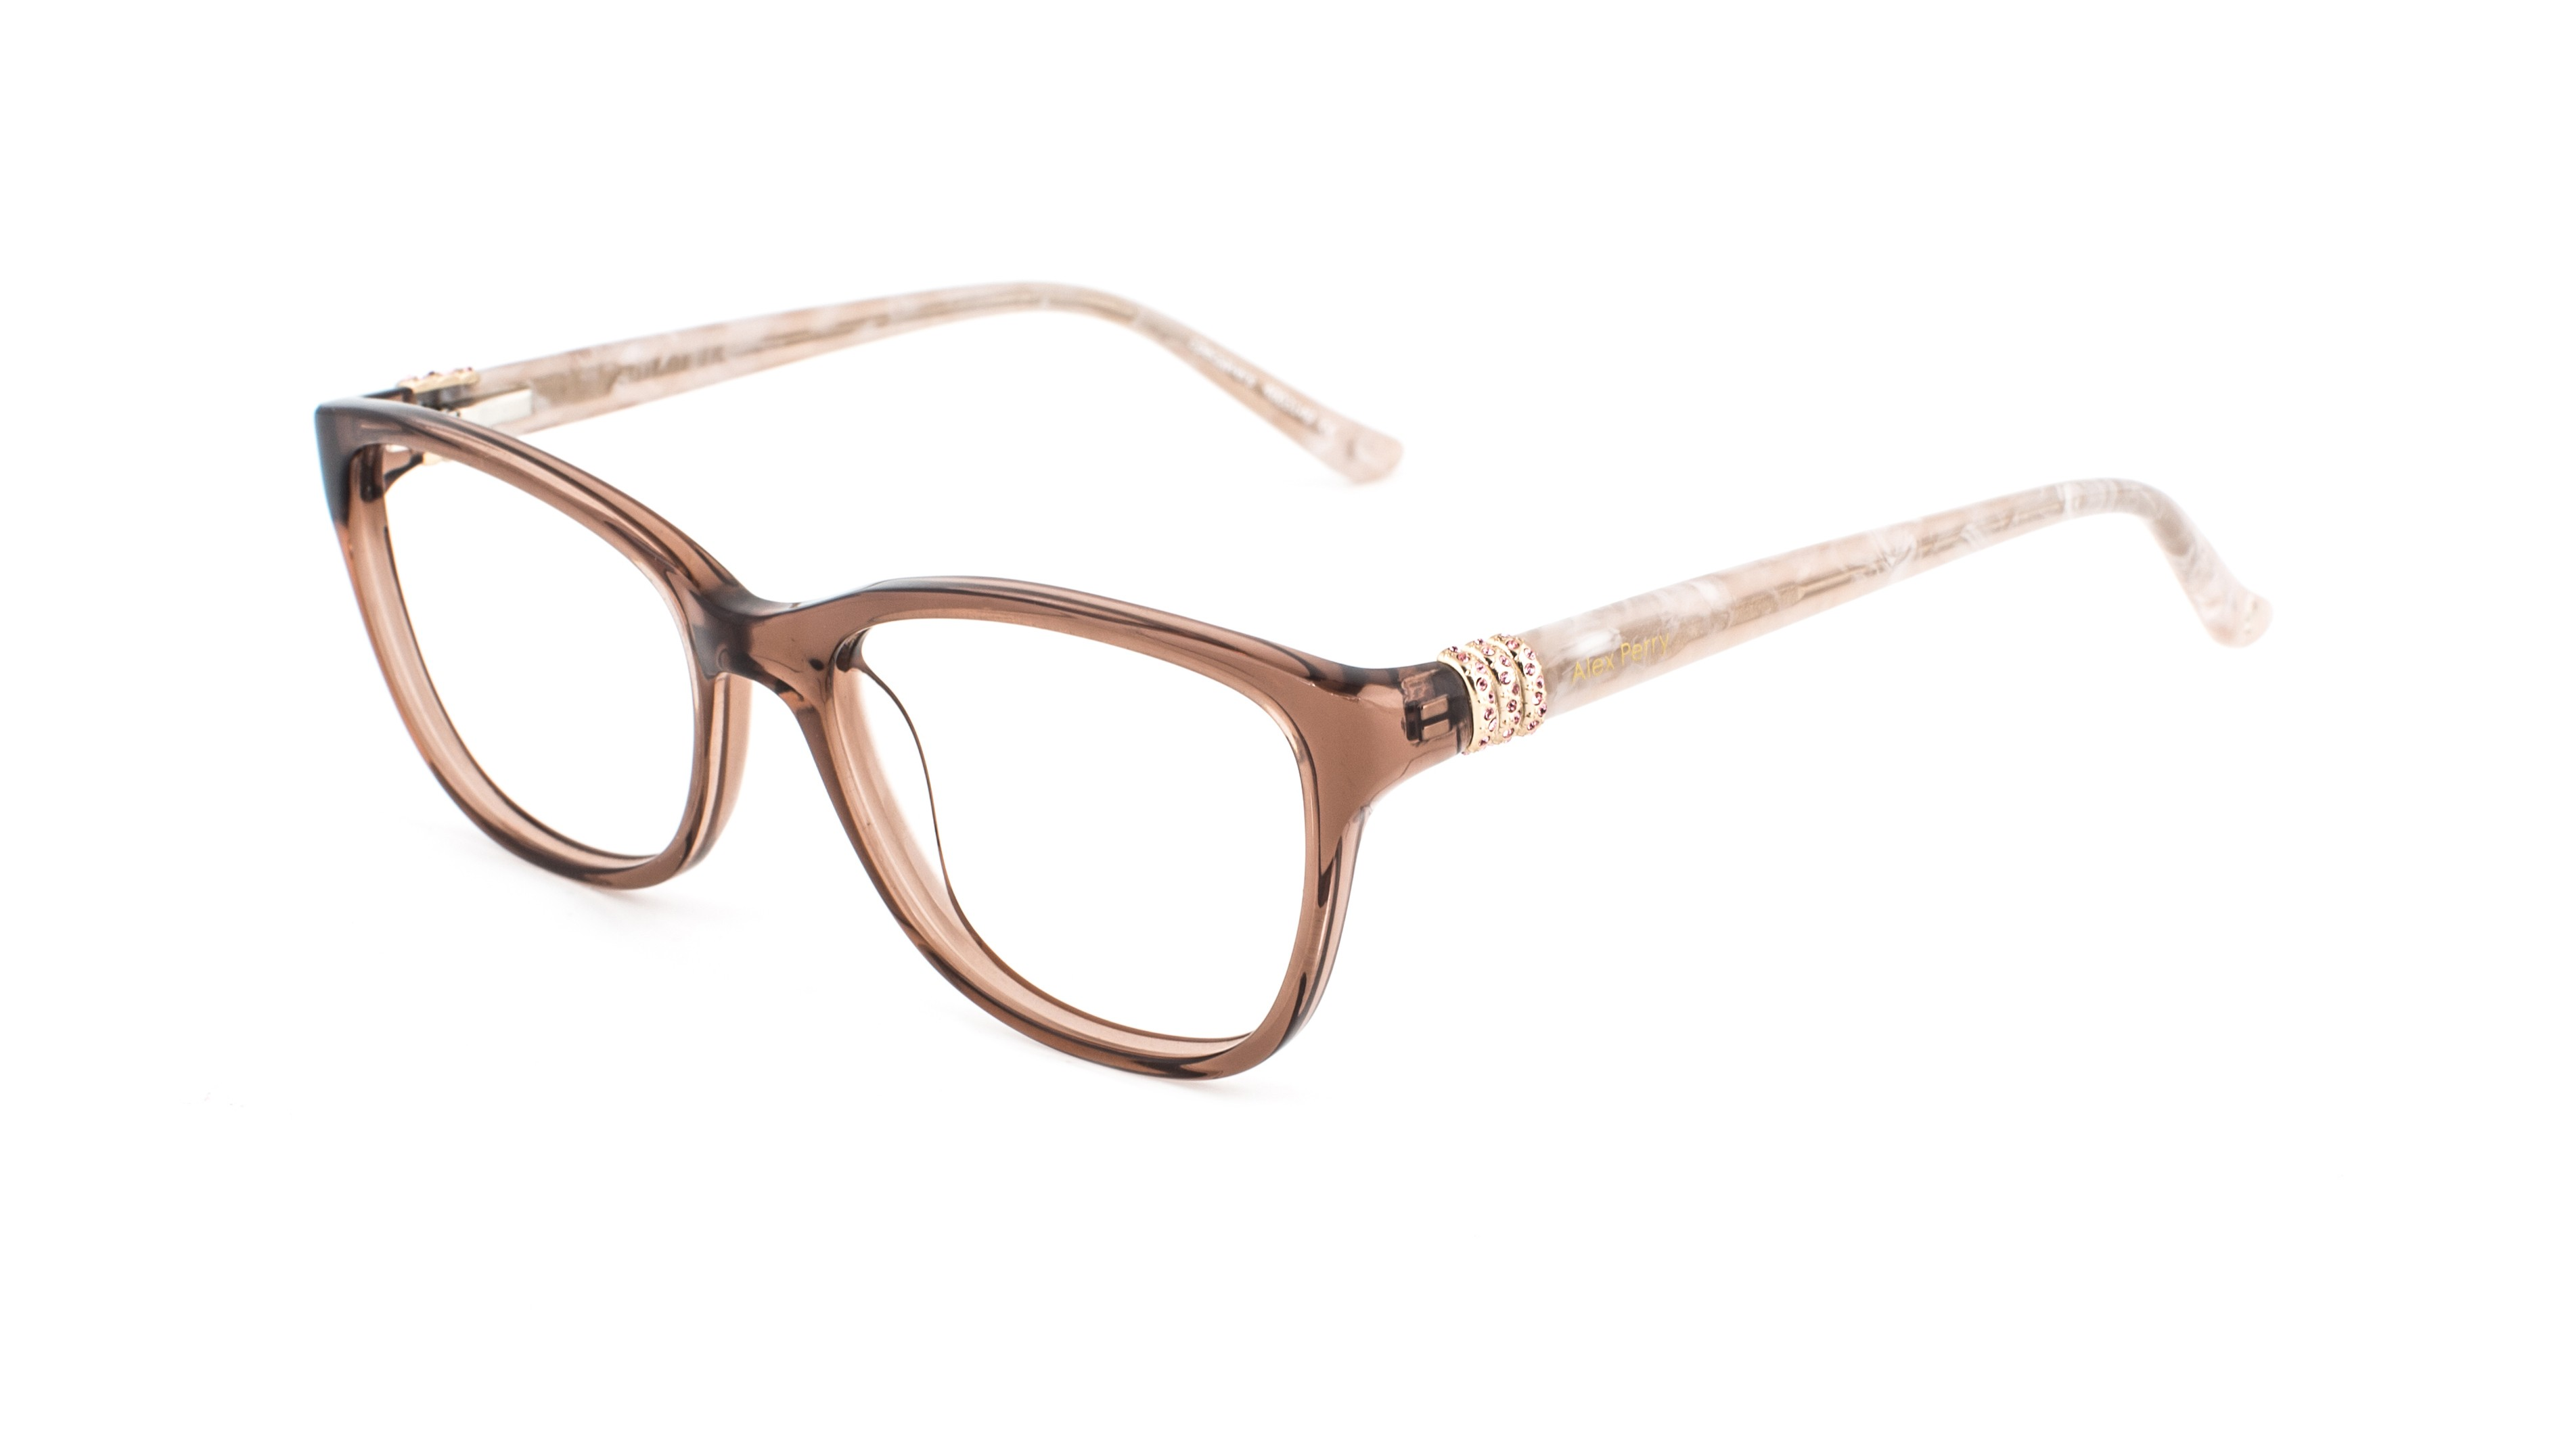 Eyeglasses Frames Womens Trends : Eyeglass Frame Trends 2015